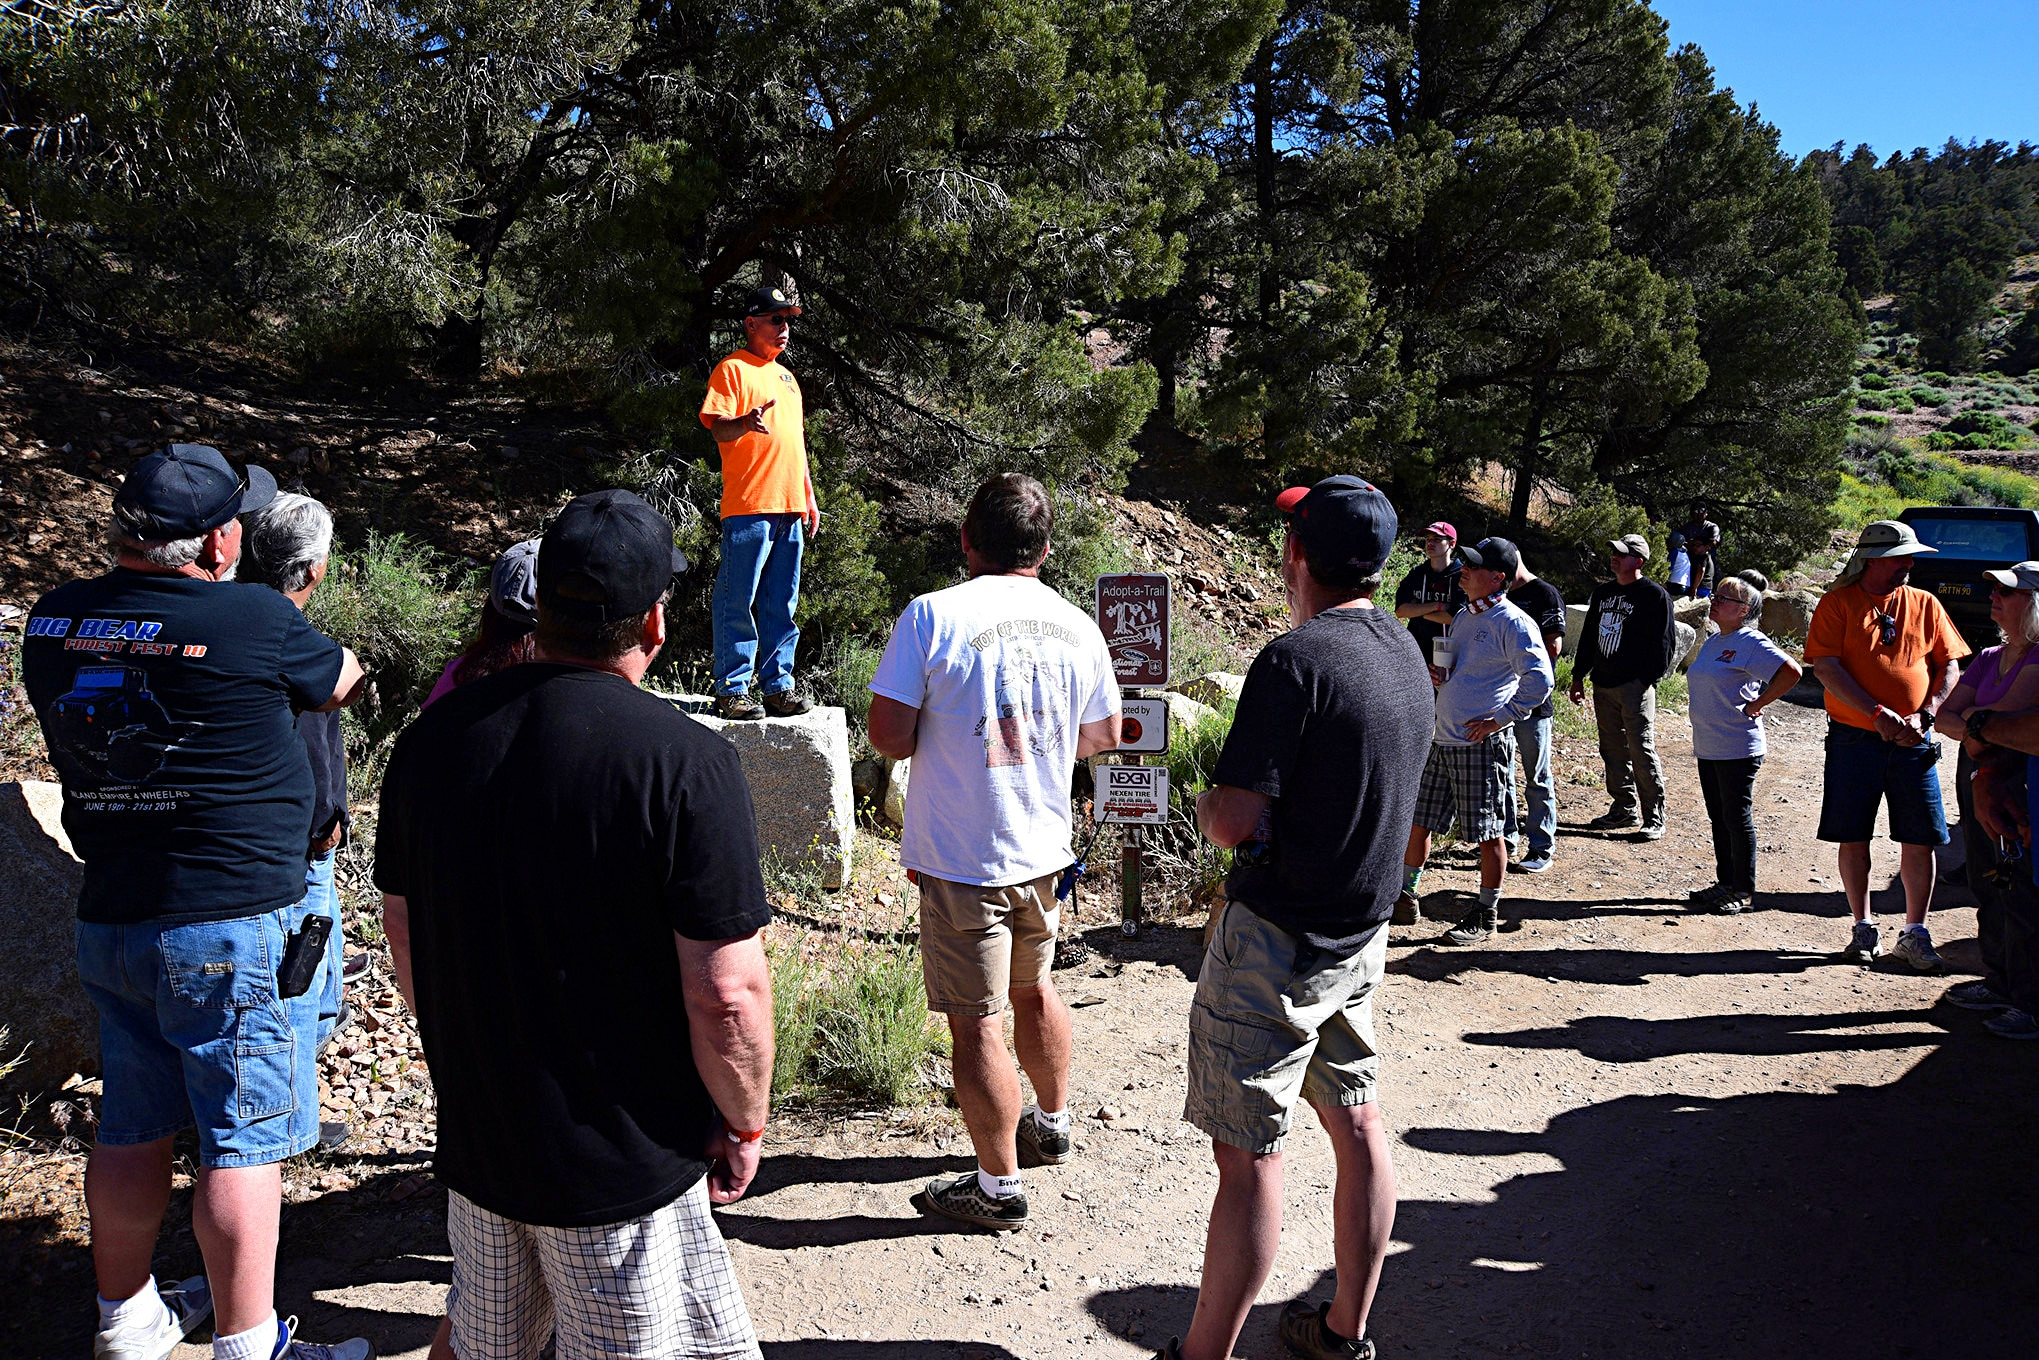 018 jeep event big bear forest fest 2019 inland empire